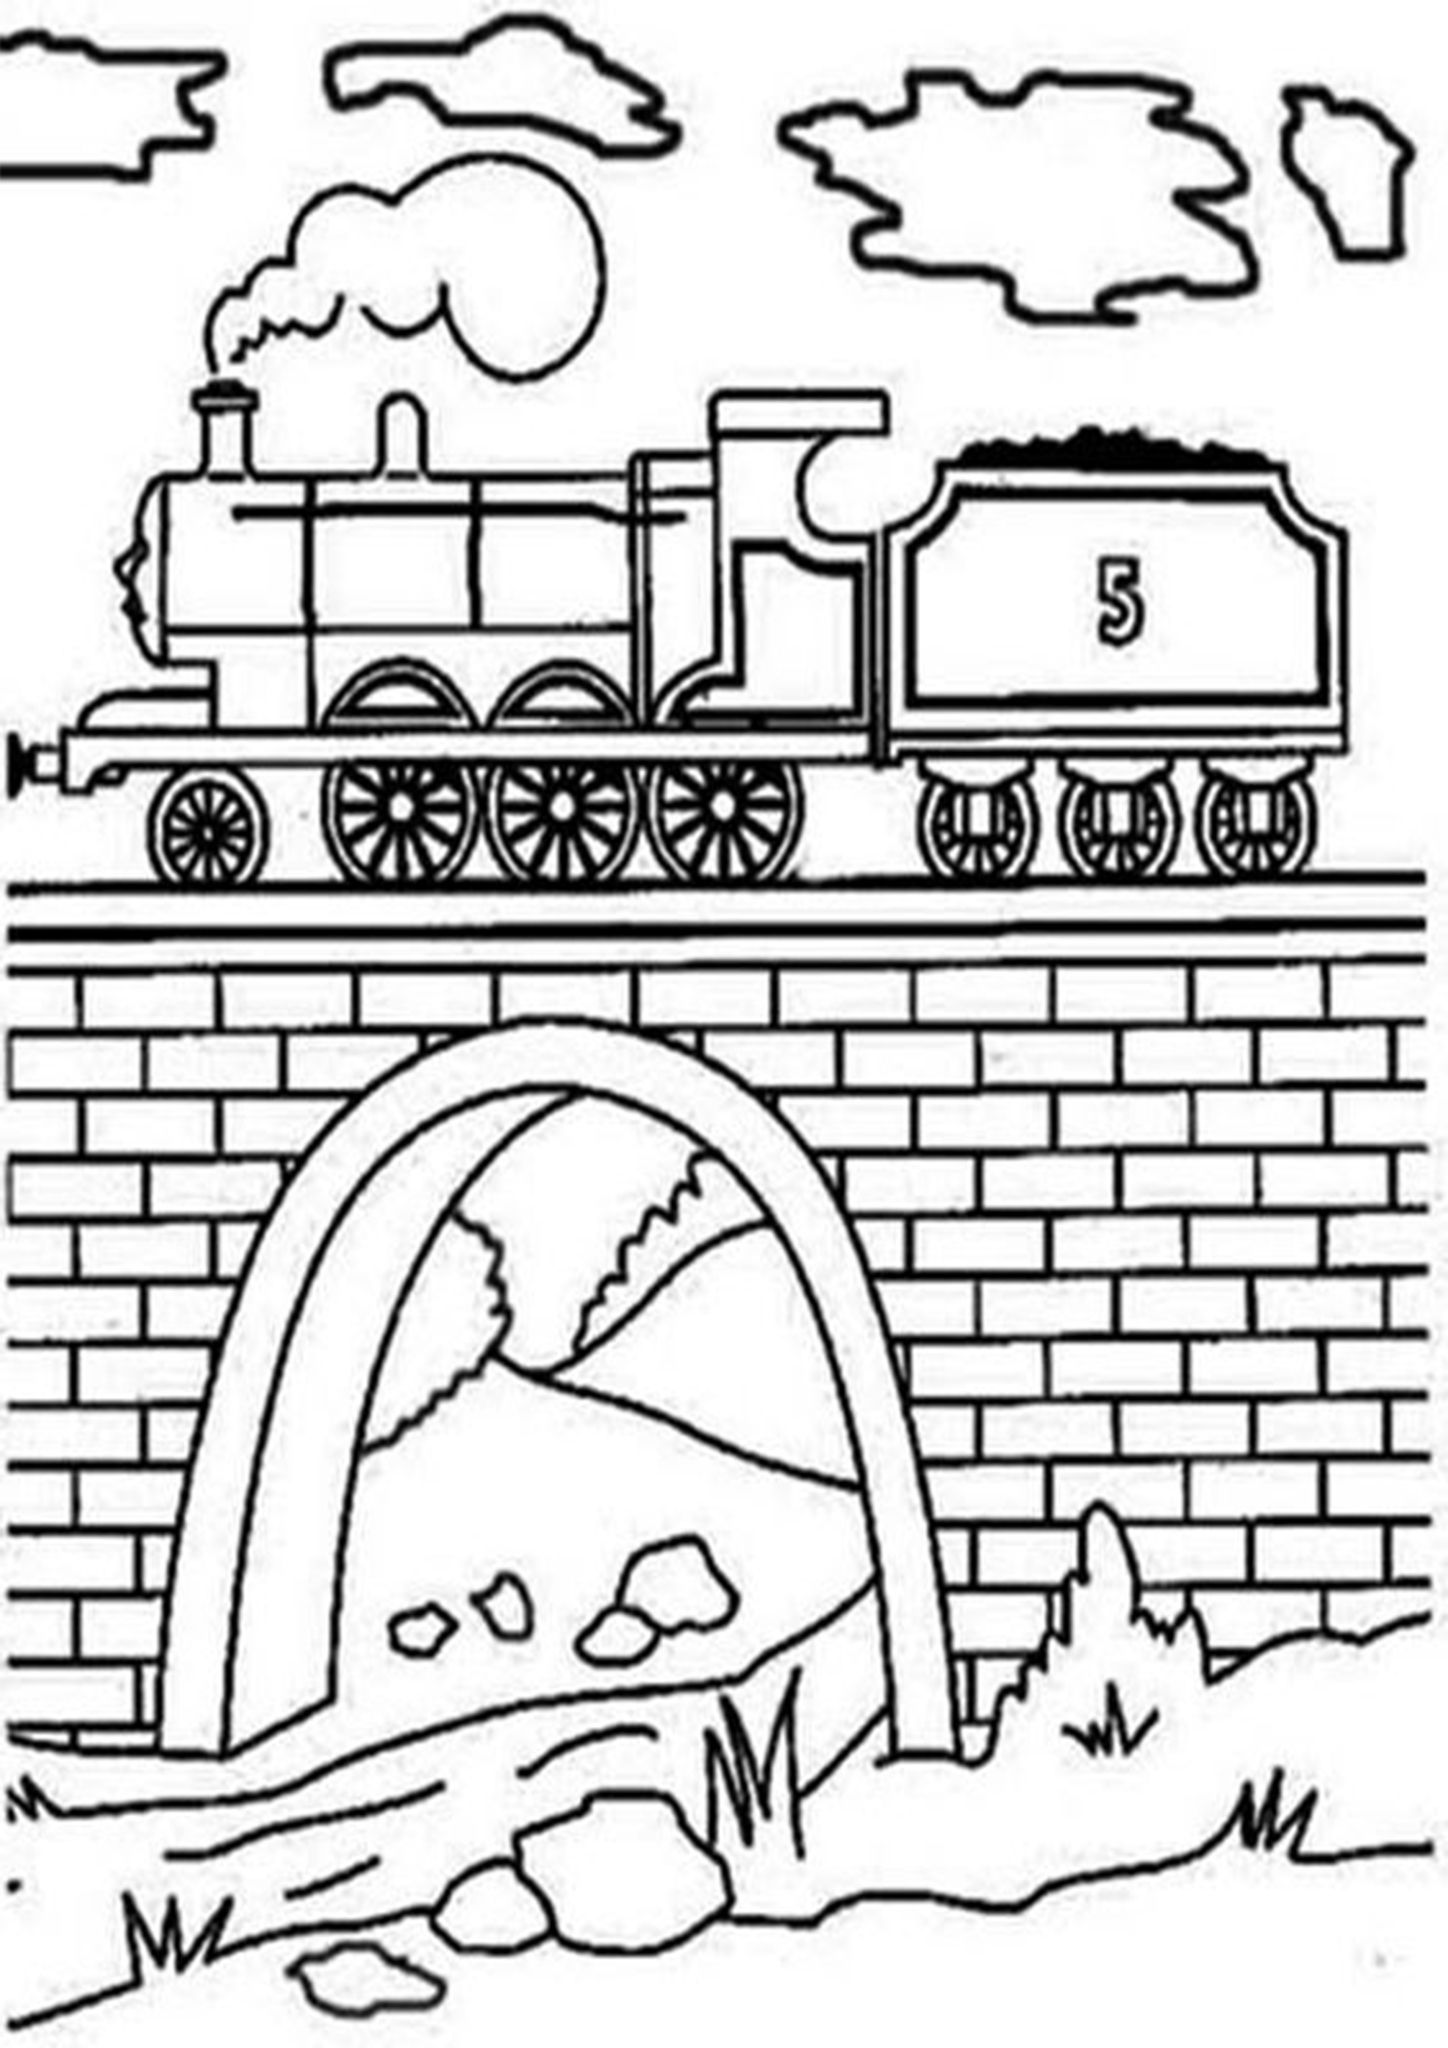 Free Easy To Print Train Coloring Pages Train Coloring Pages Train Coloring Free Kids Coloring Pages